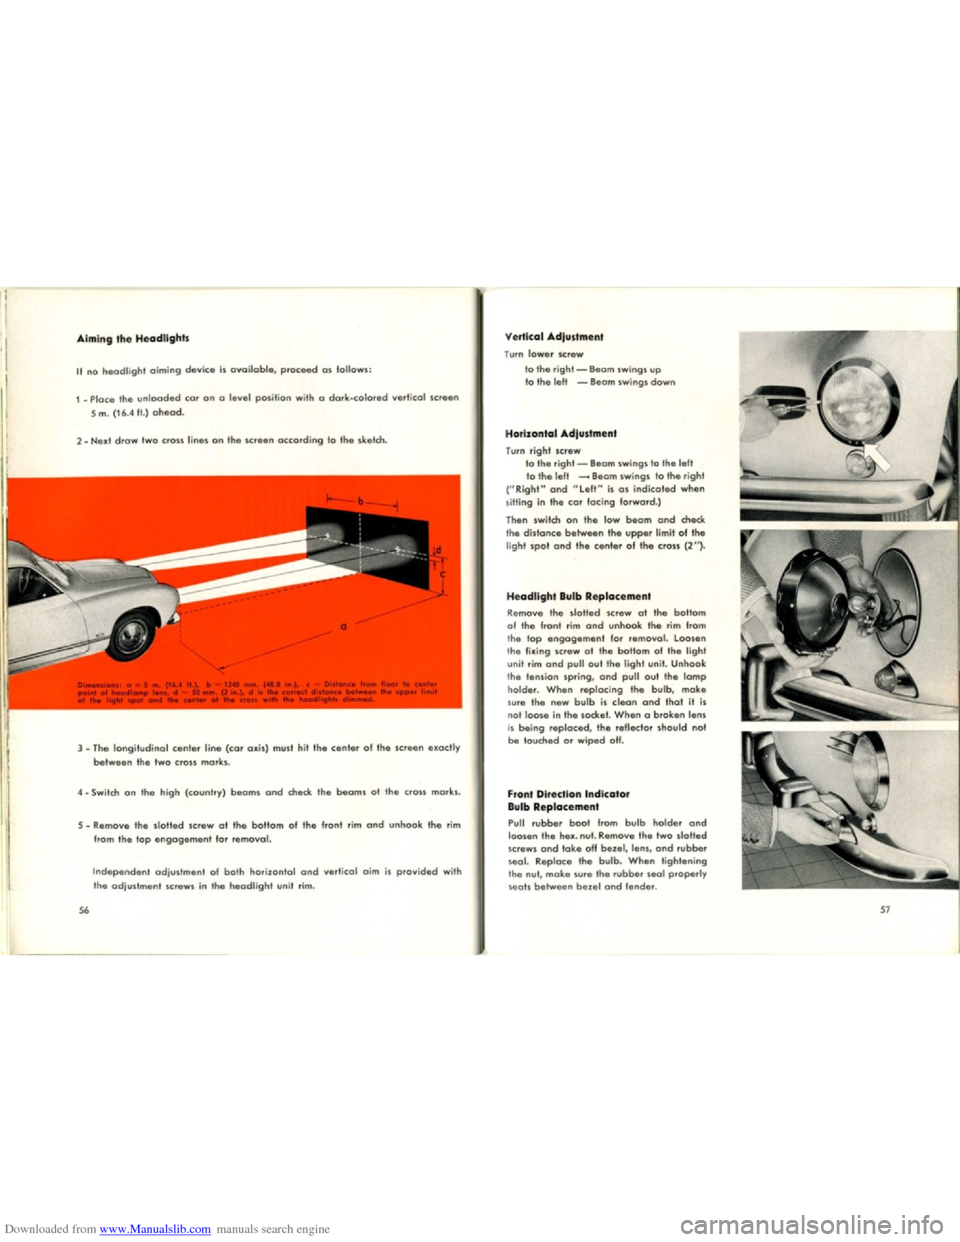 VOLKSWAGEN KARMANN GHIA 1958 1.G Owners Manual, Page 30